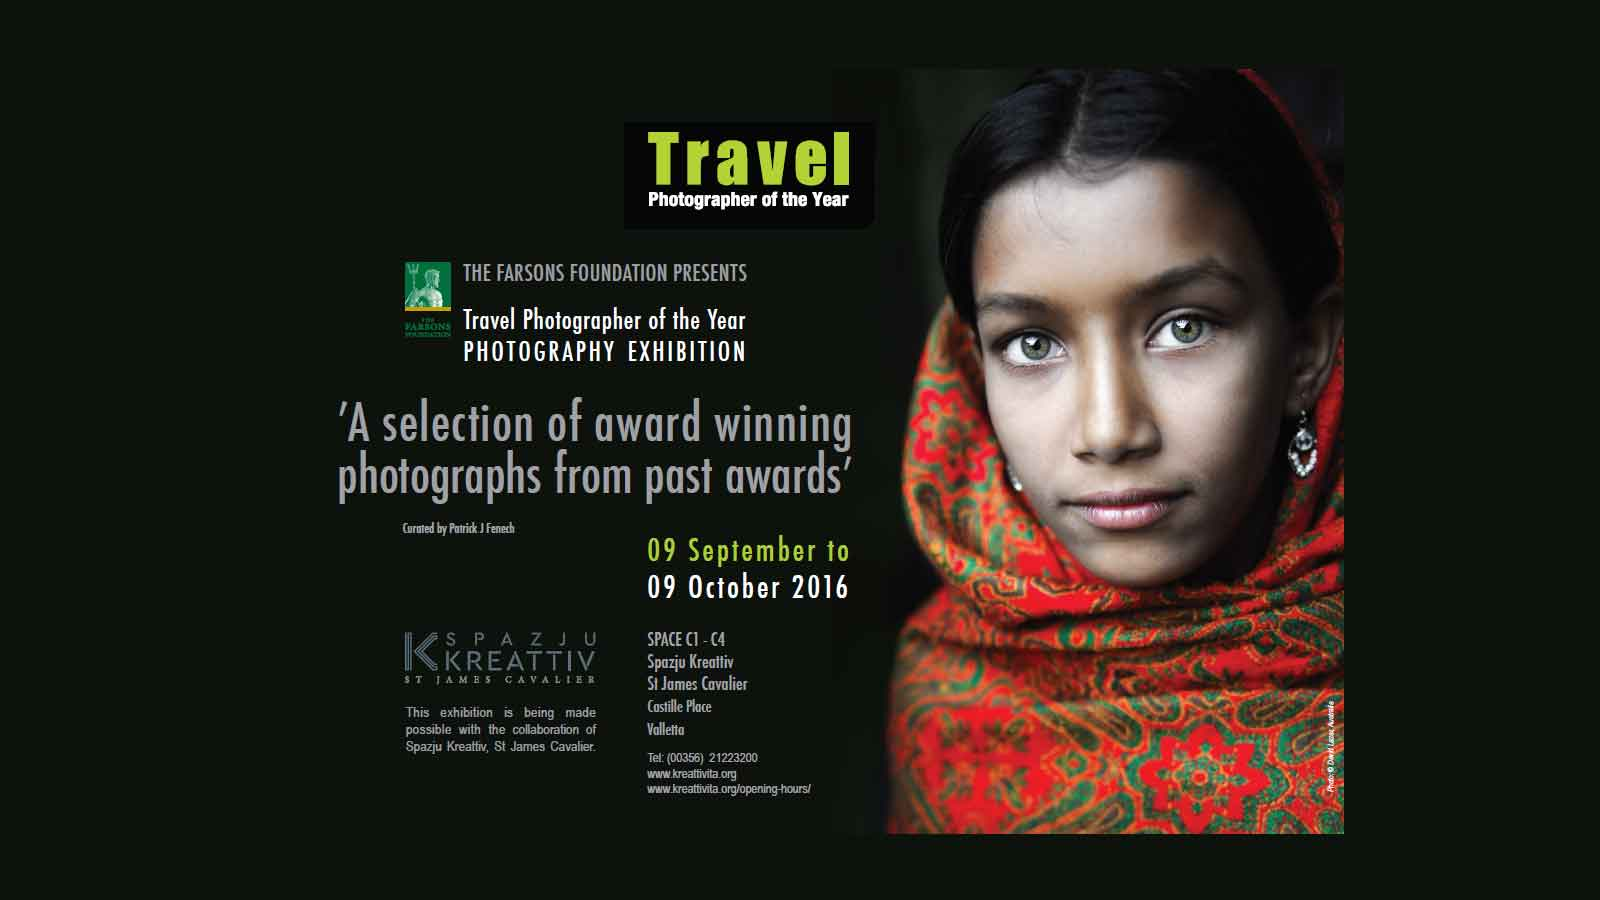 The Farsons Foundation brings best of Travel Photographer of the Year to St James Cavalier